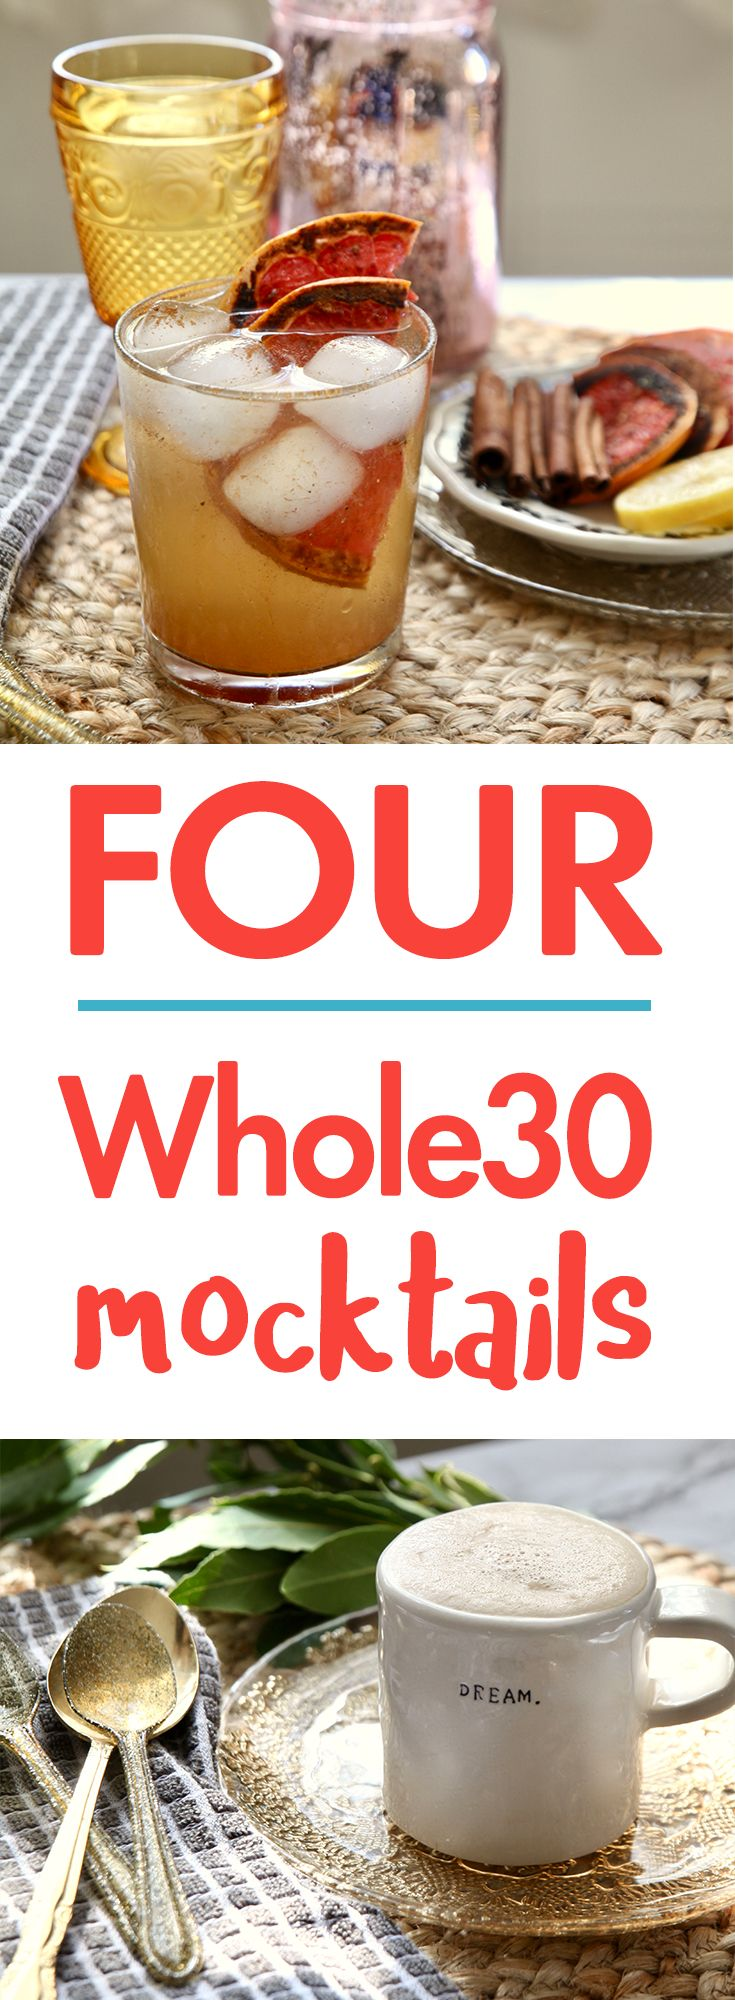 Whole30 New Year's Eve Mocktails for Mama